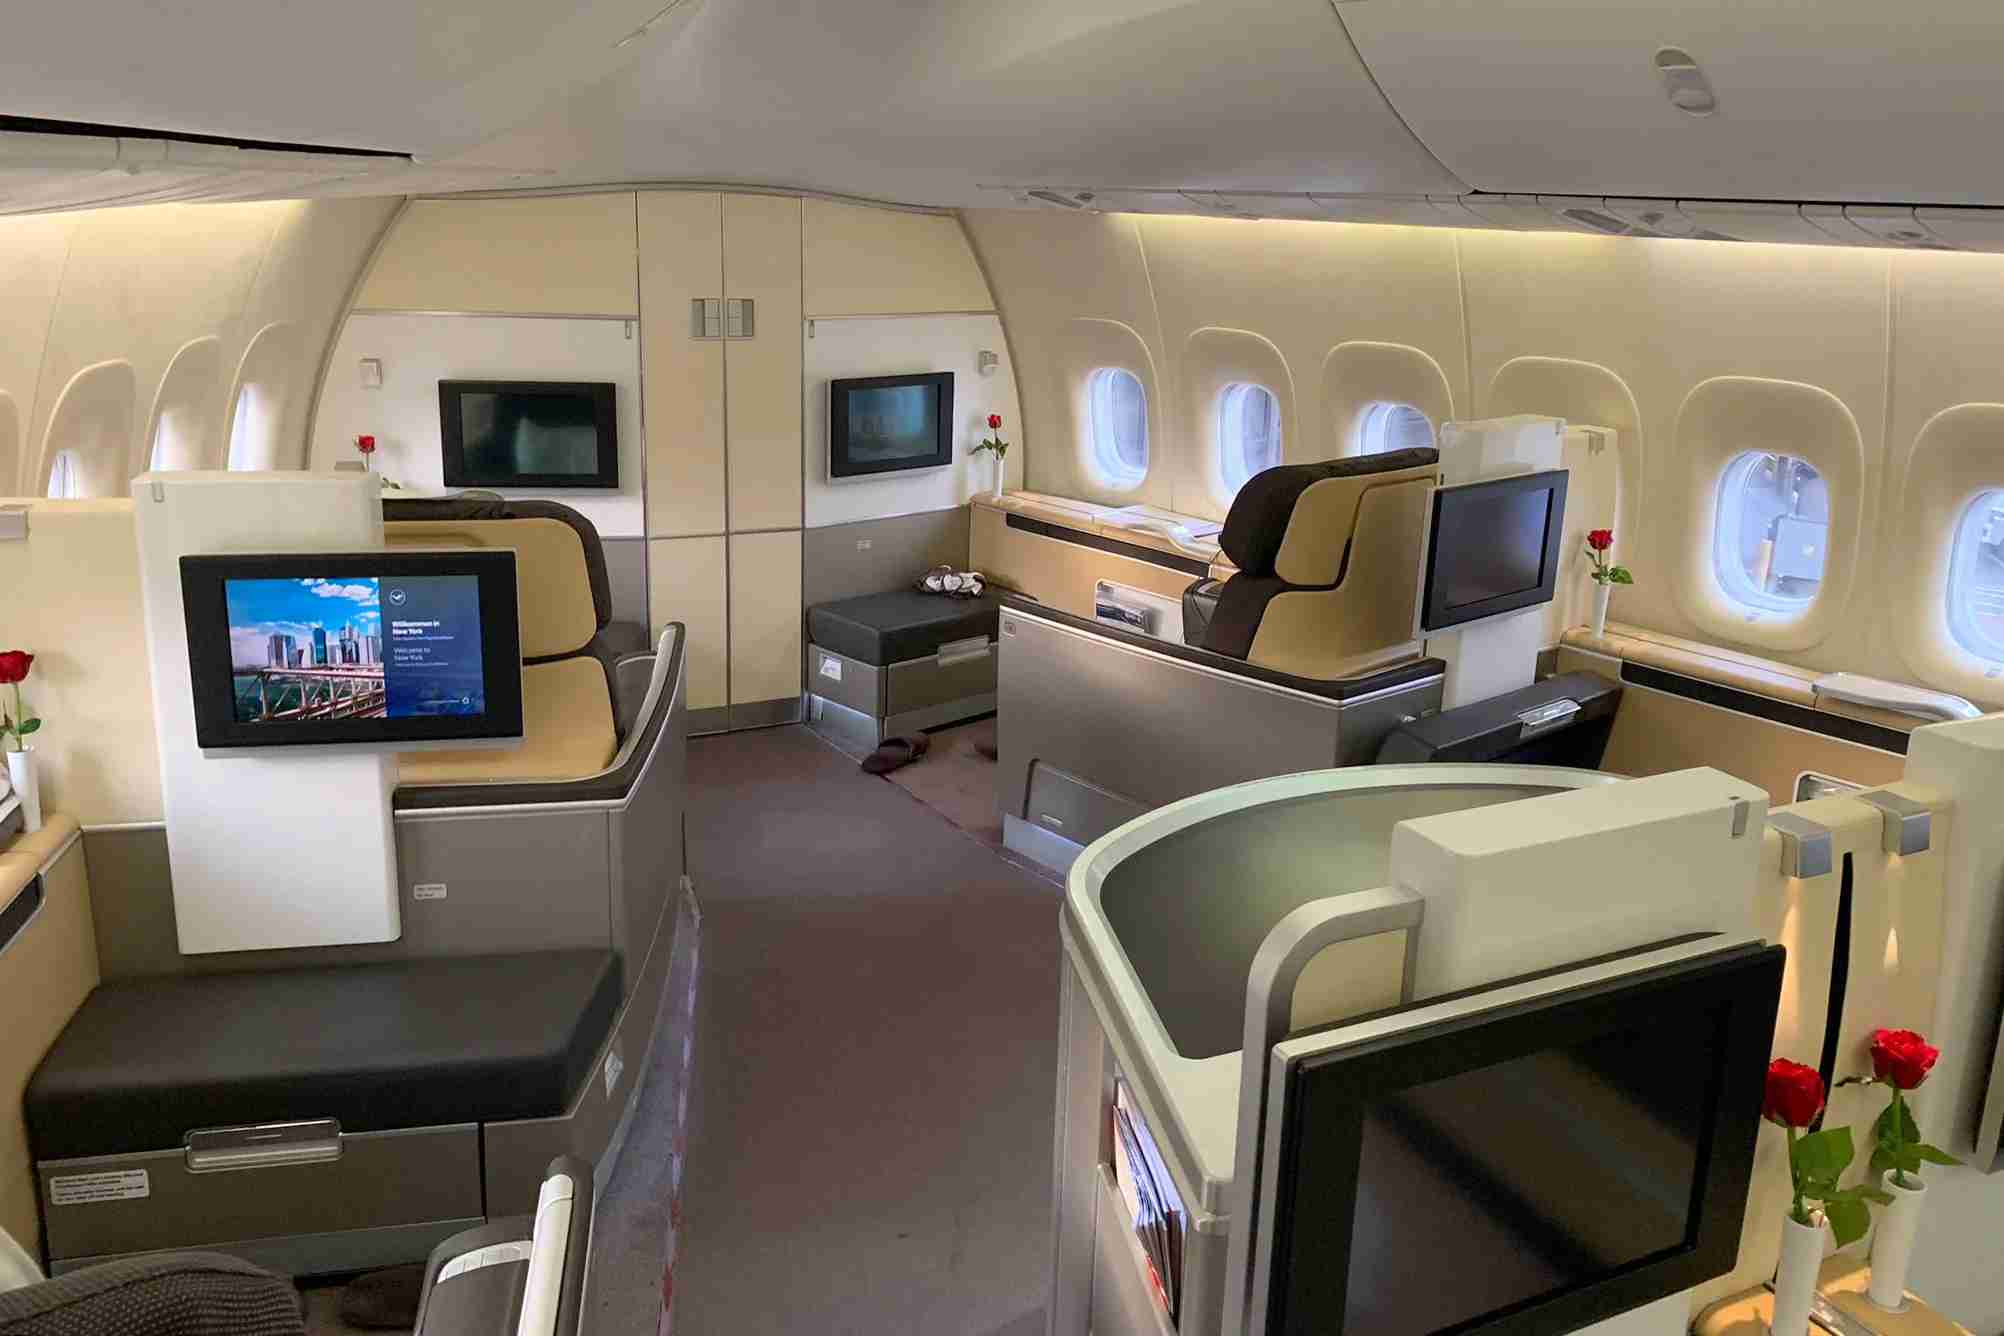 Asiana offers one of the cheapest ways to book Lufthansa first class, but they do pass on massive fuel surcharges